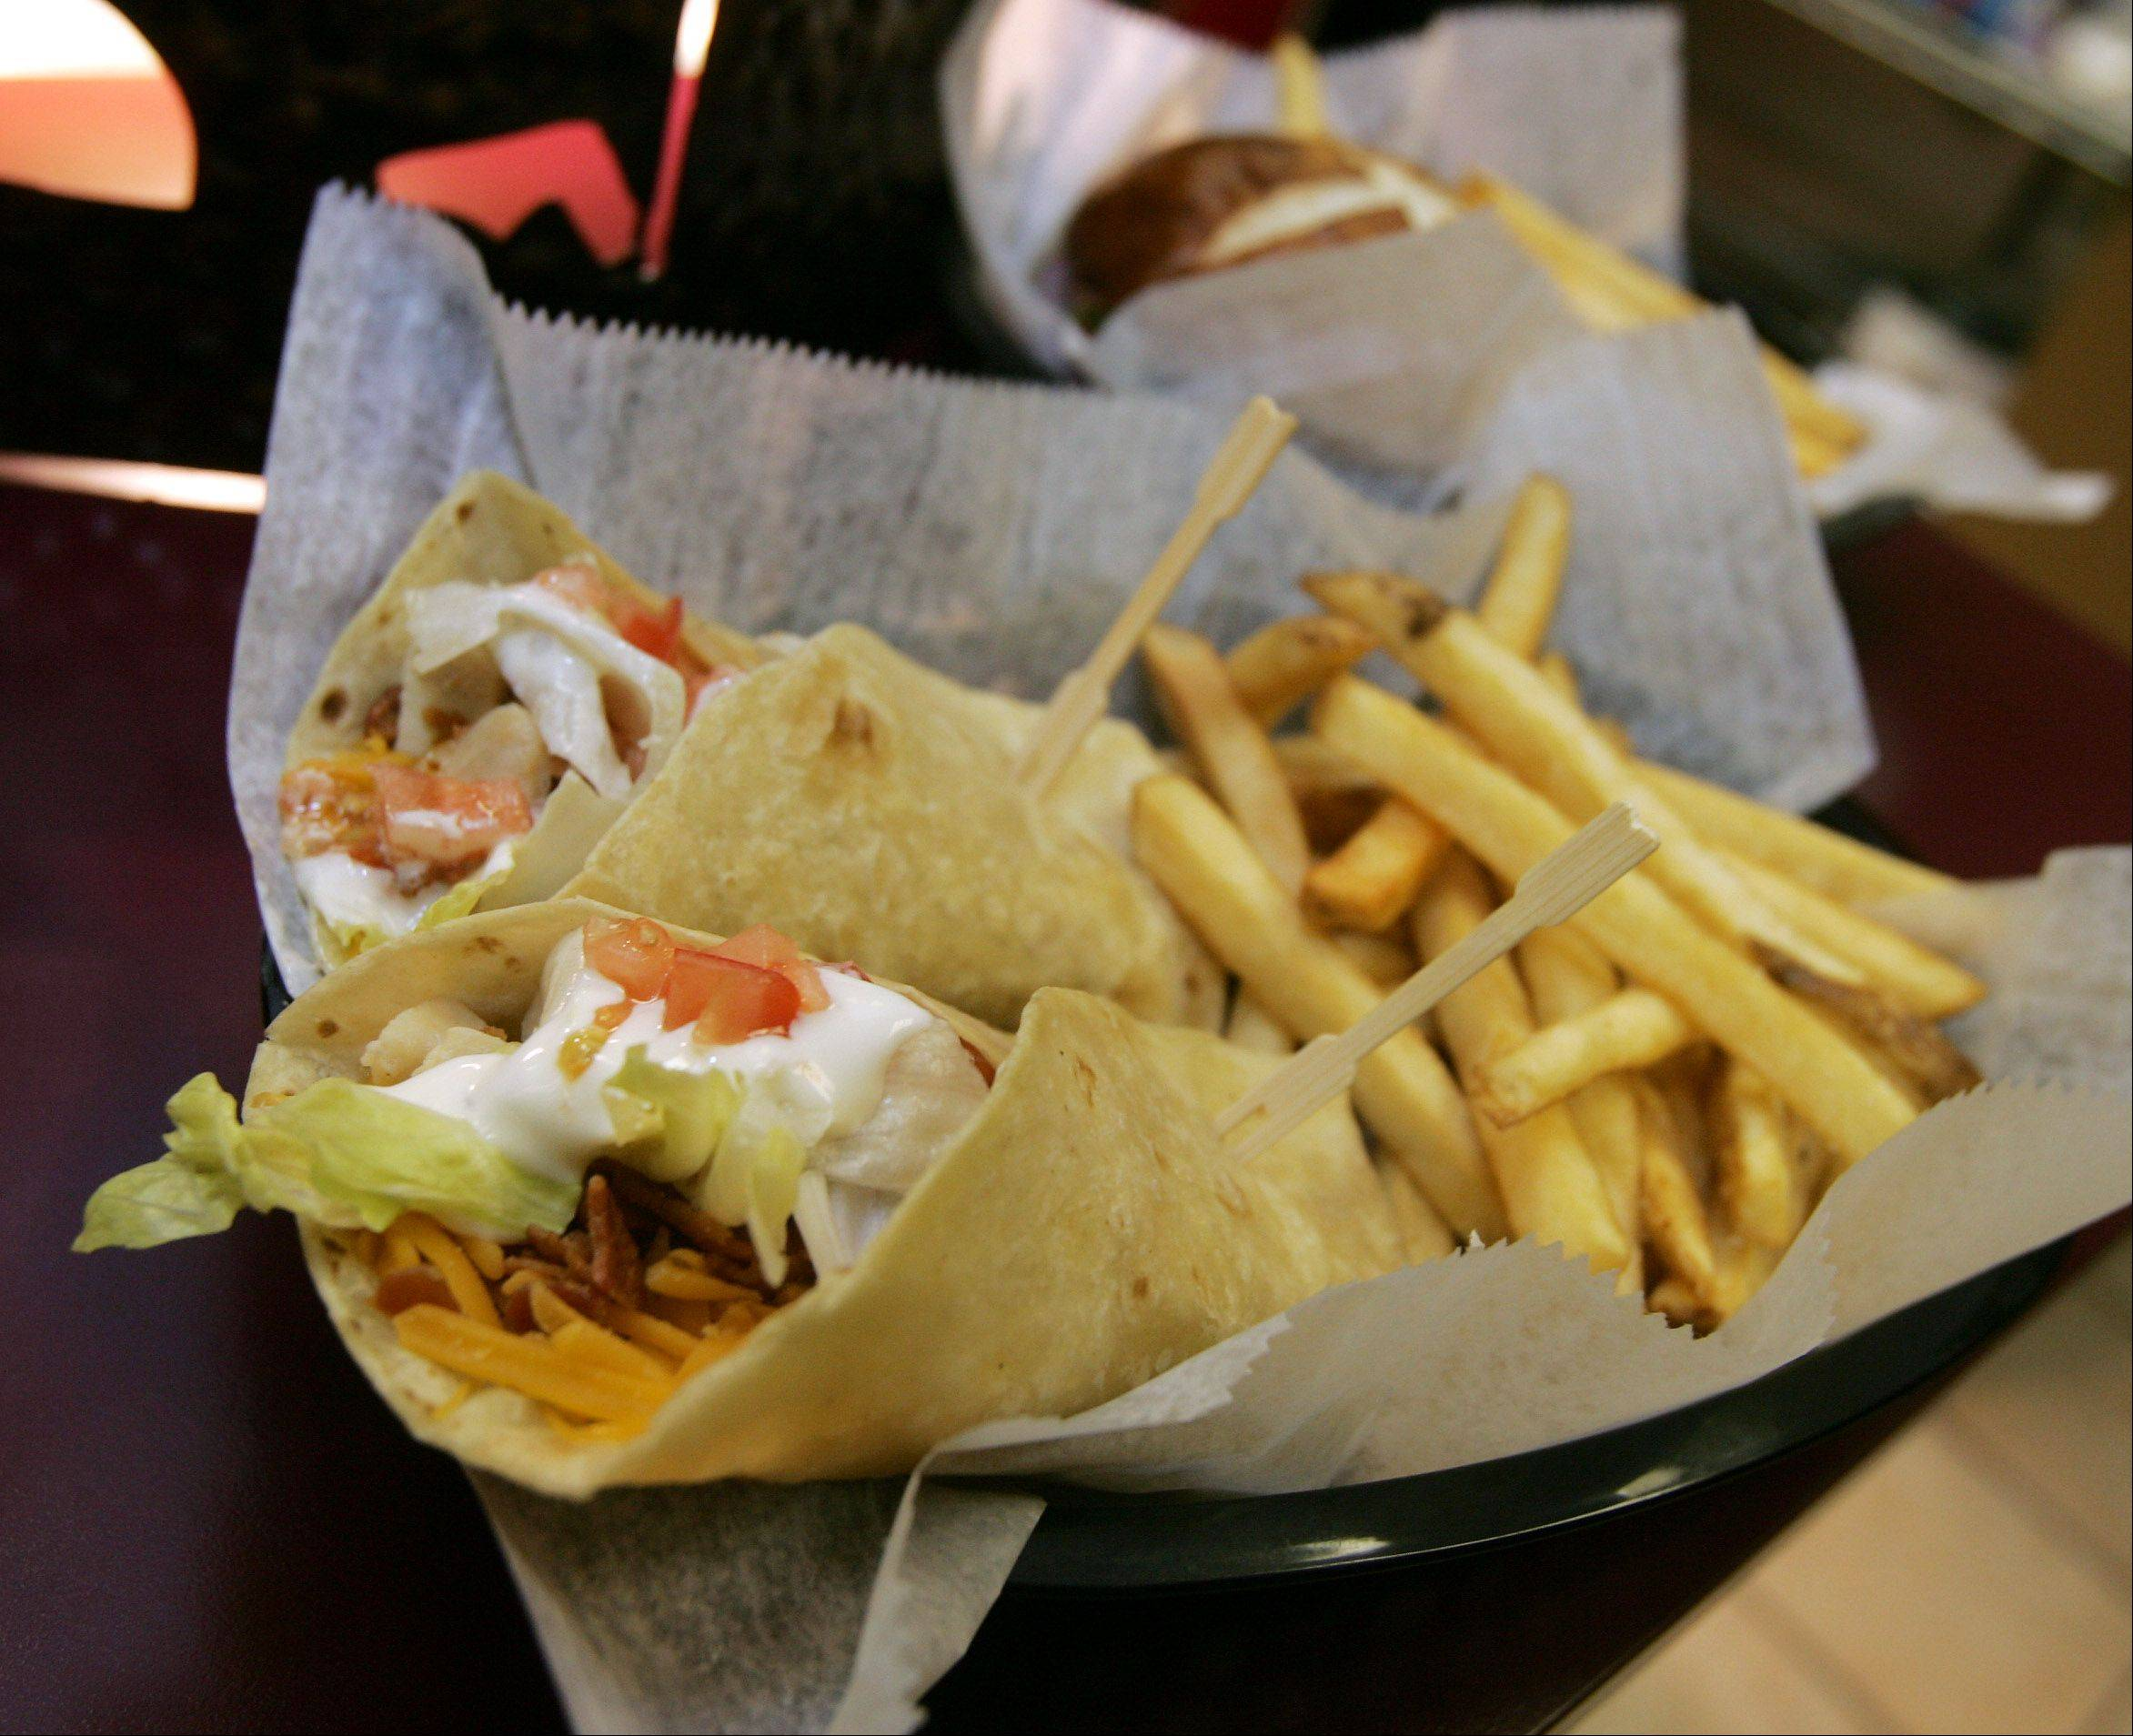 The chicken bacon wrap with fries is one of the dinner options at Mavericks.